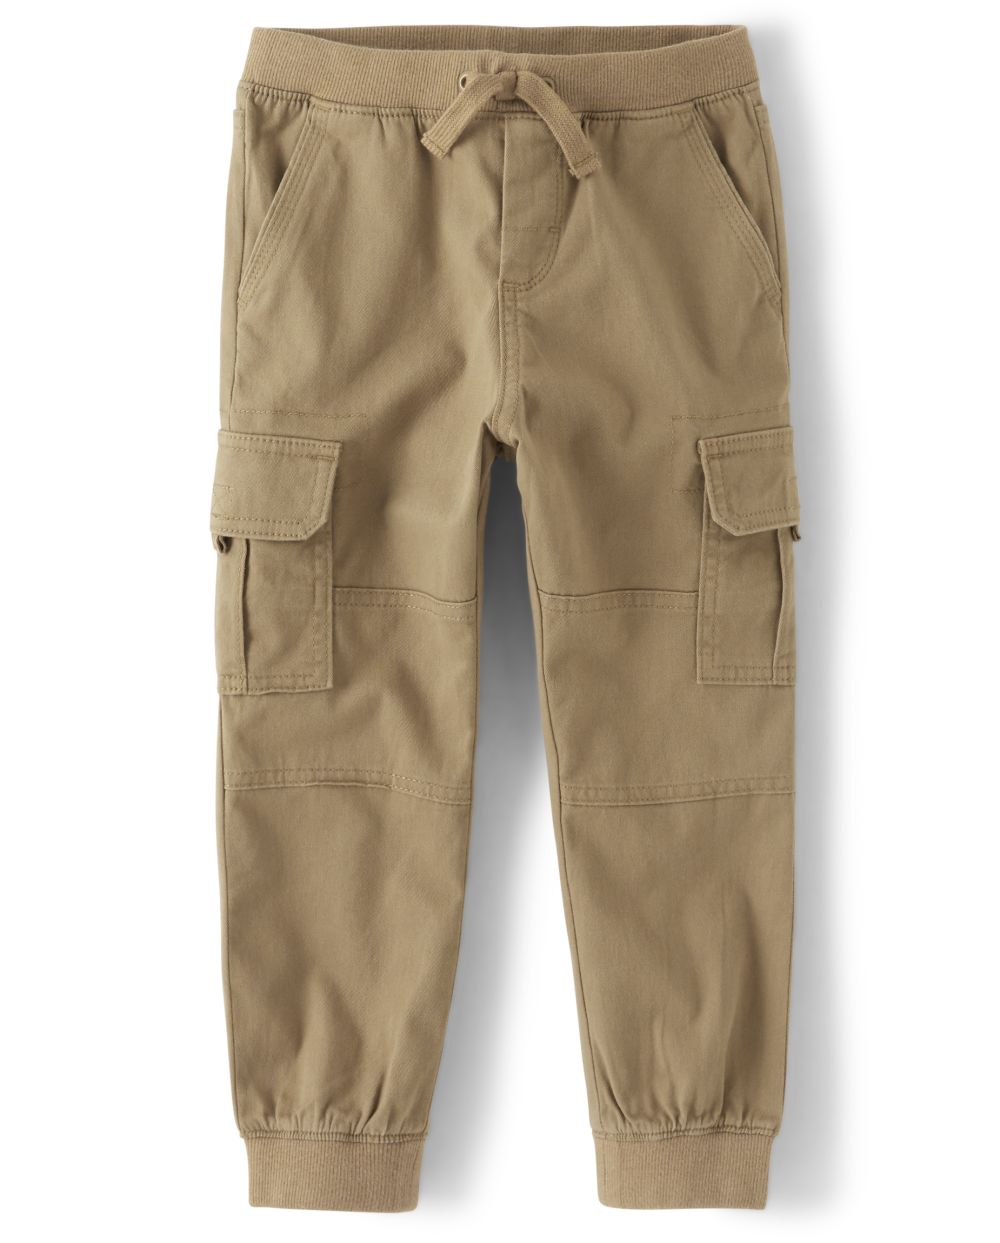 Boys Cargo Pants - Every Day Play